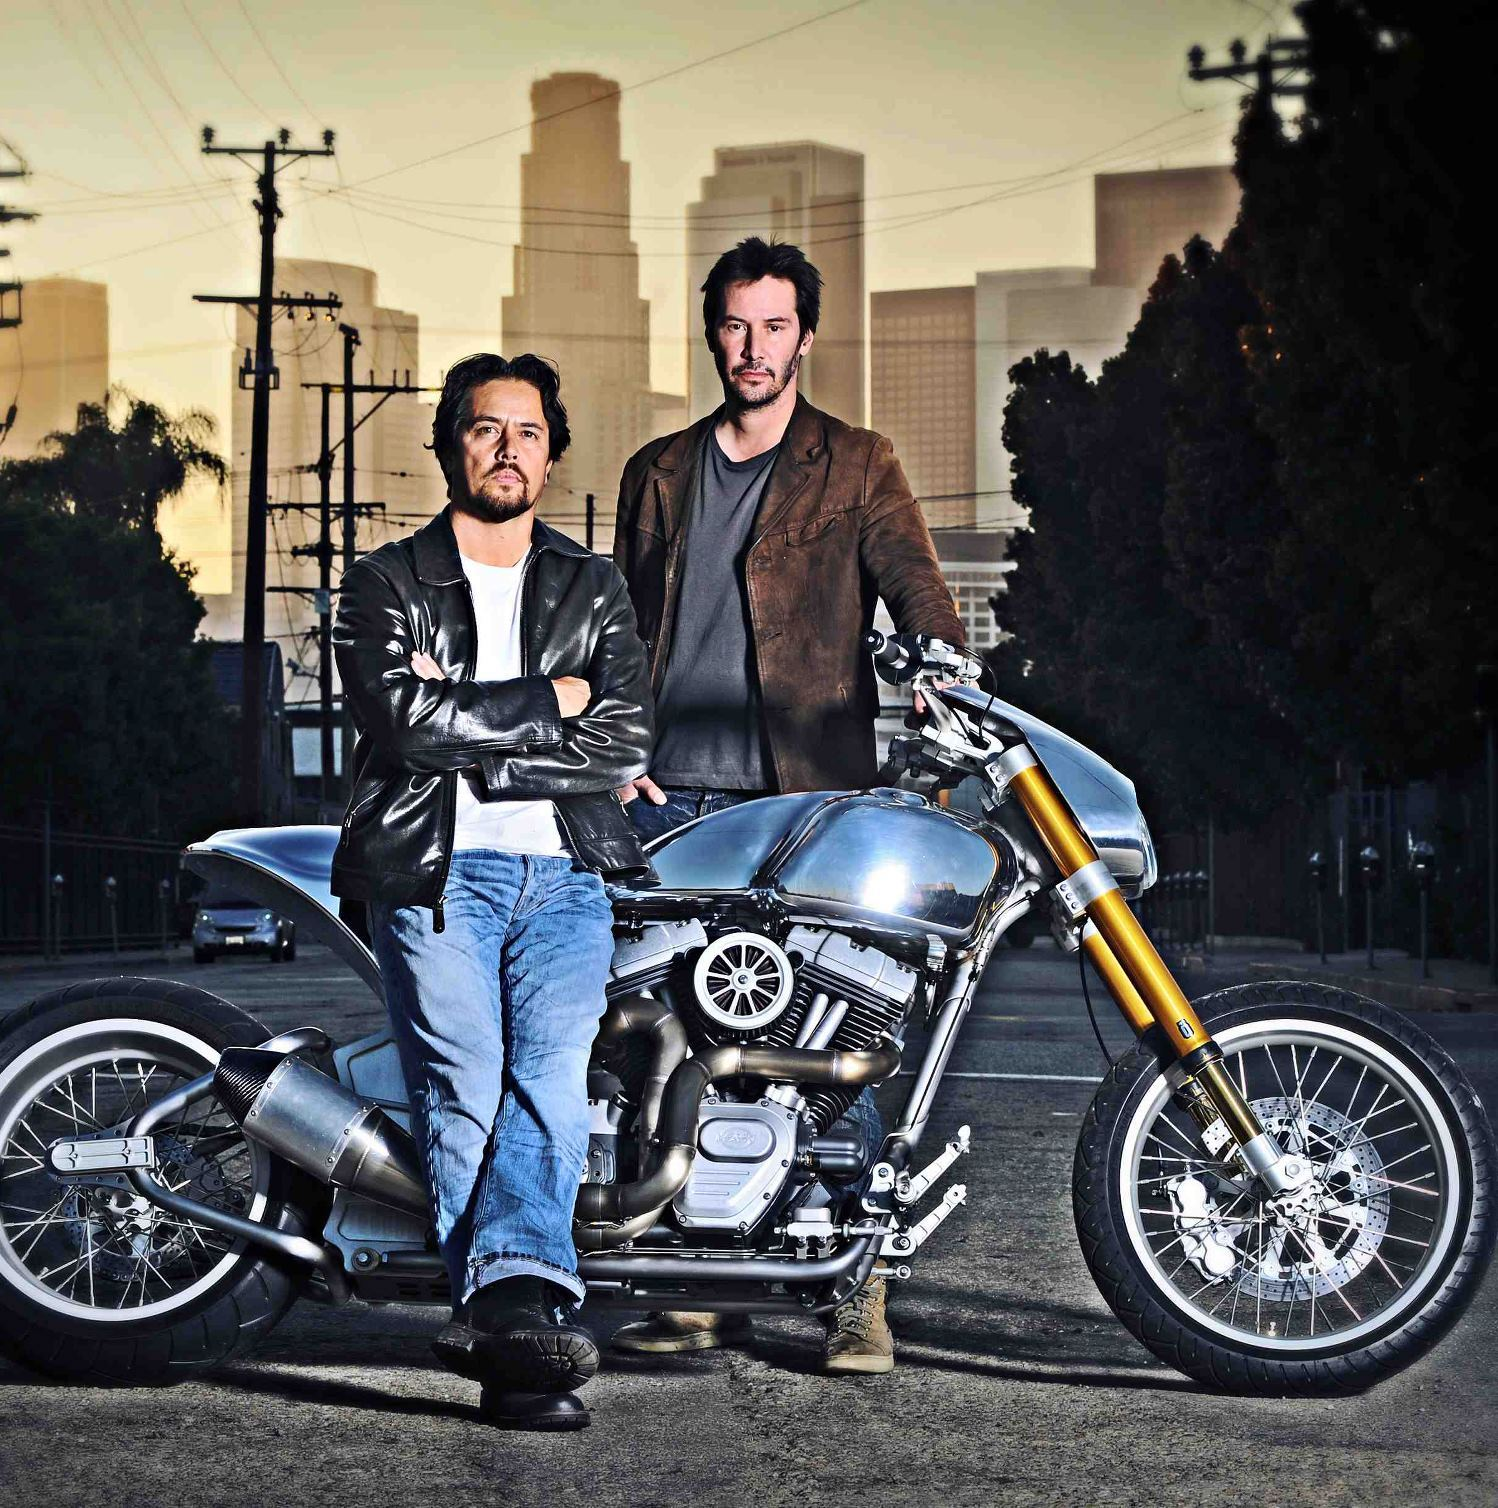 keanu reeves concept harley davidson by arch motorcycle photo gallery 51212 1 25 Keanu Facts Only True Fans Know